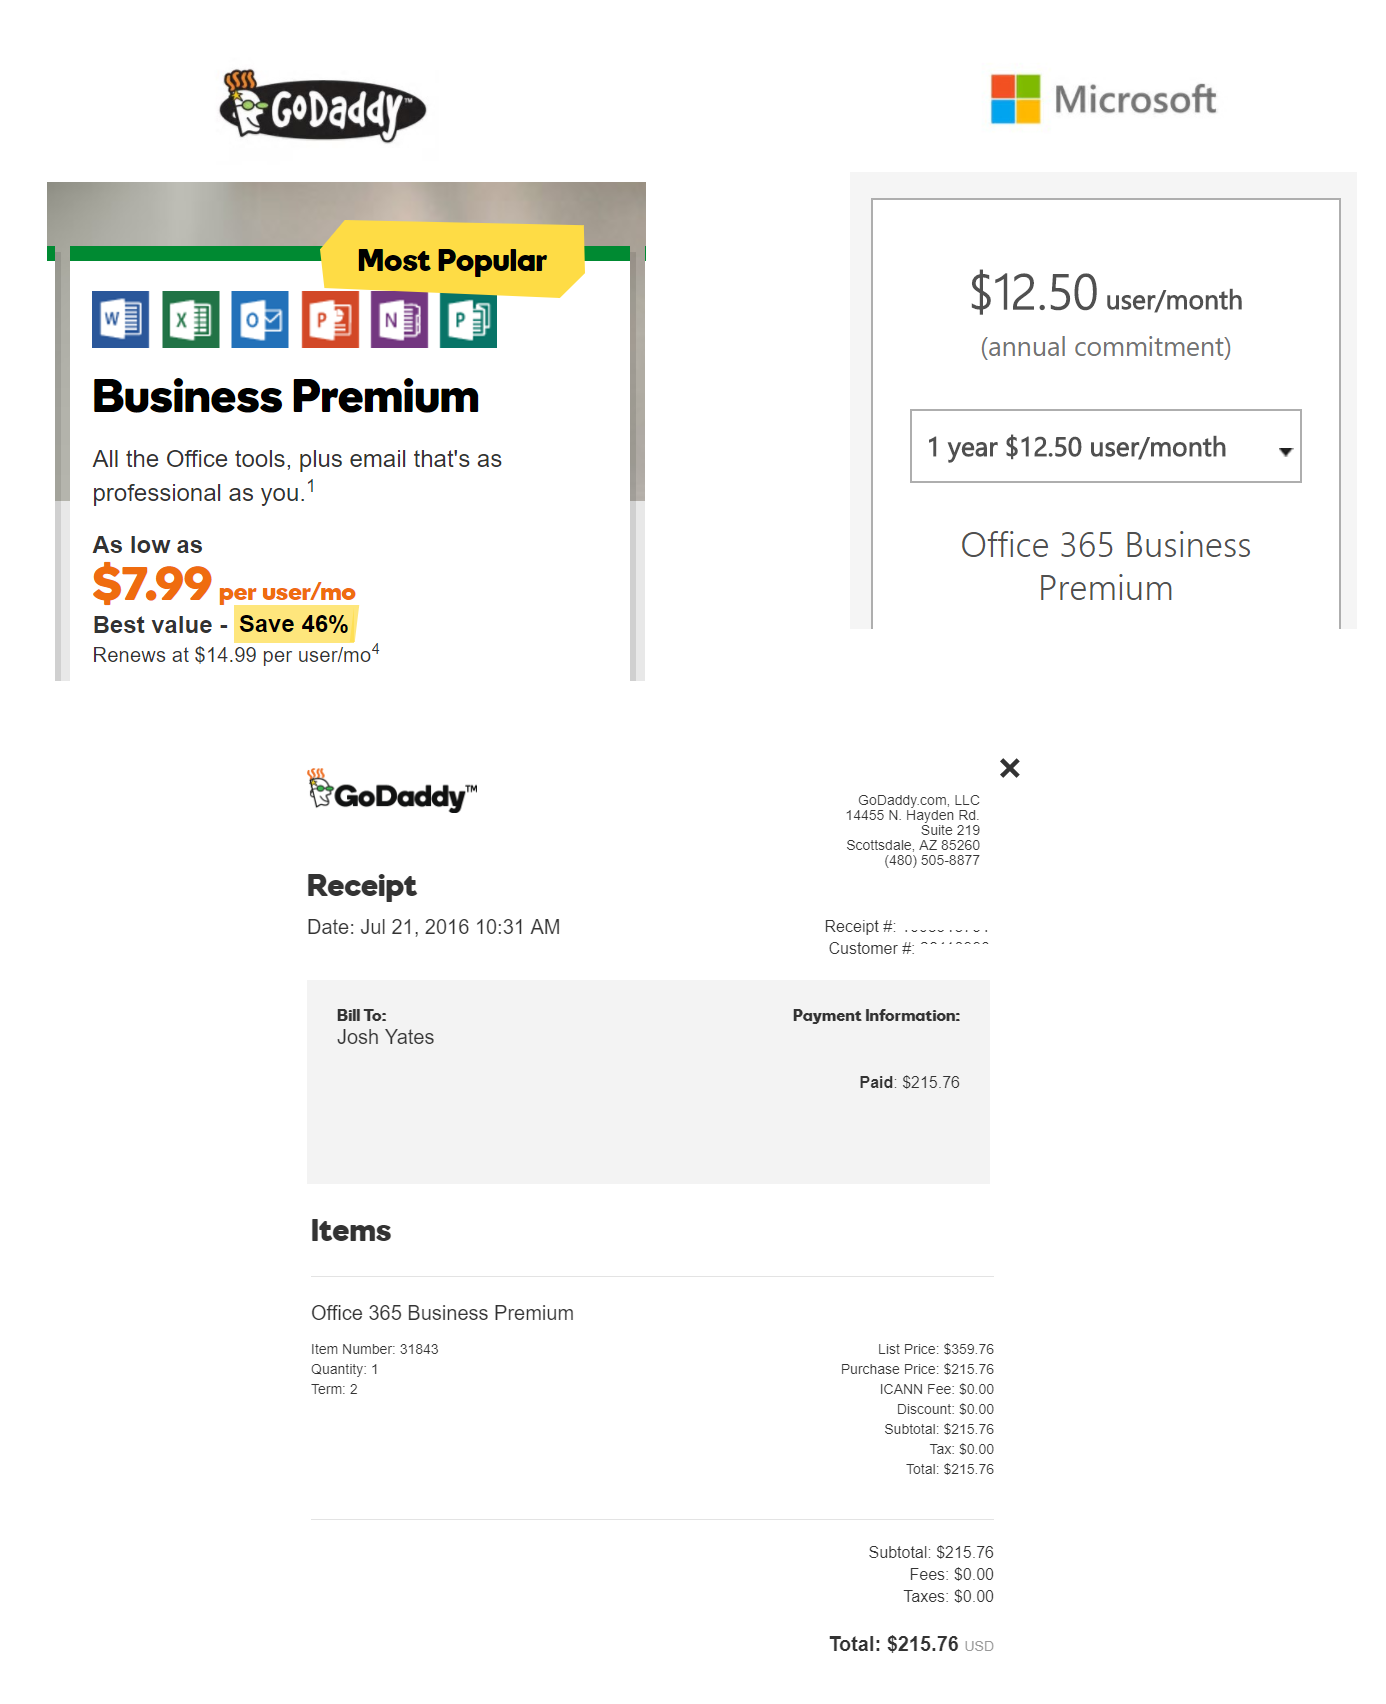 My experience with the purchase of Office365 through GoDaddy